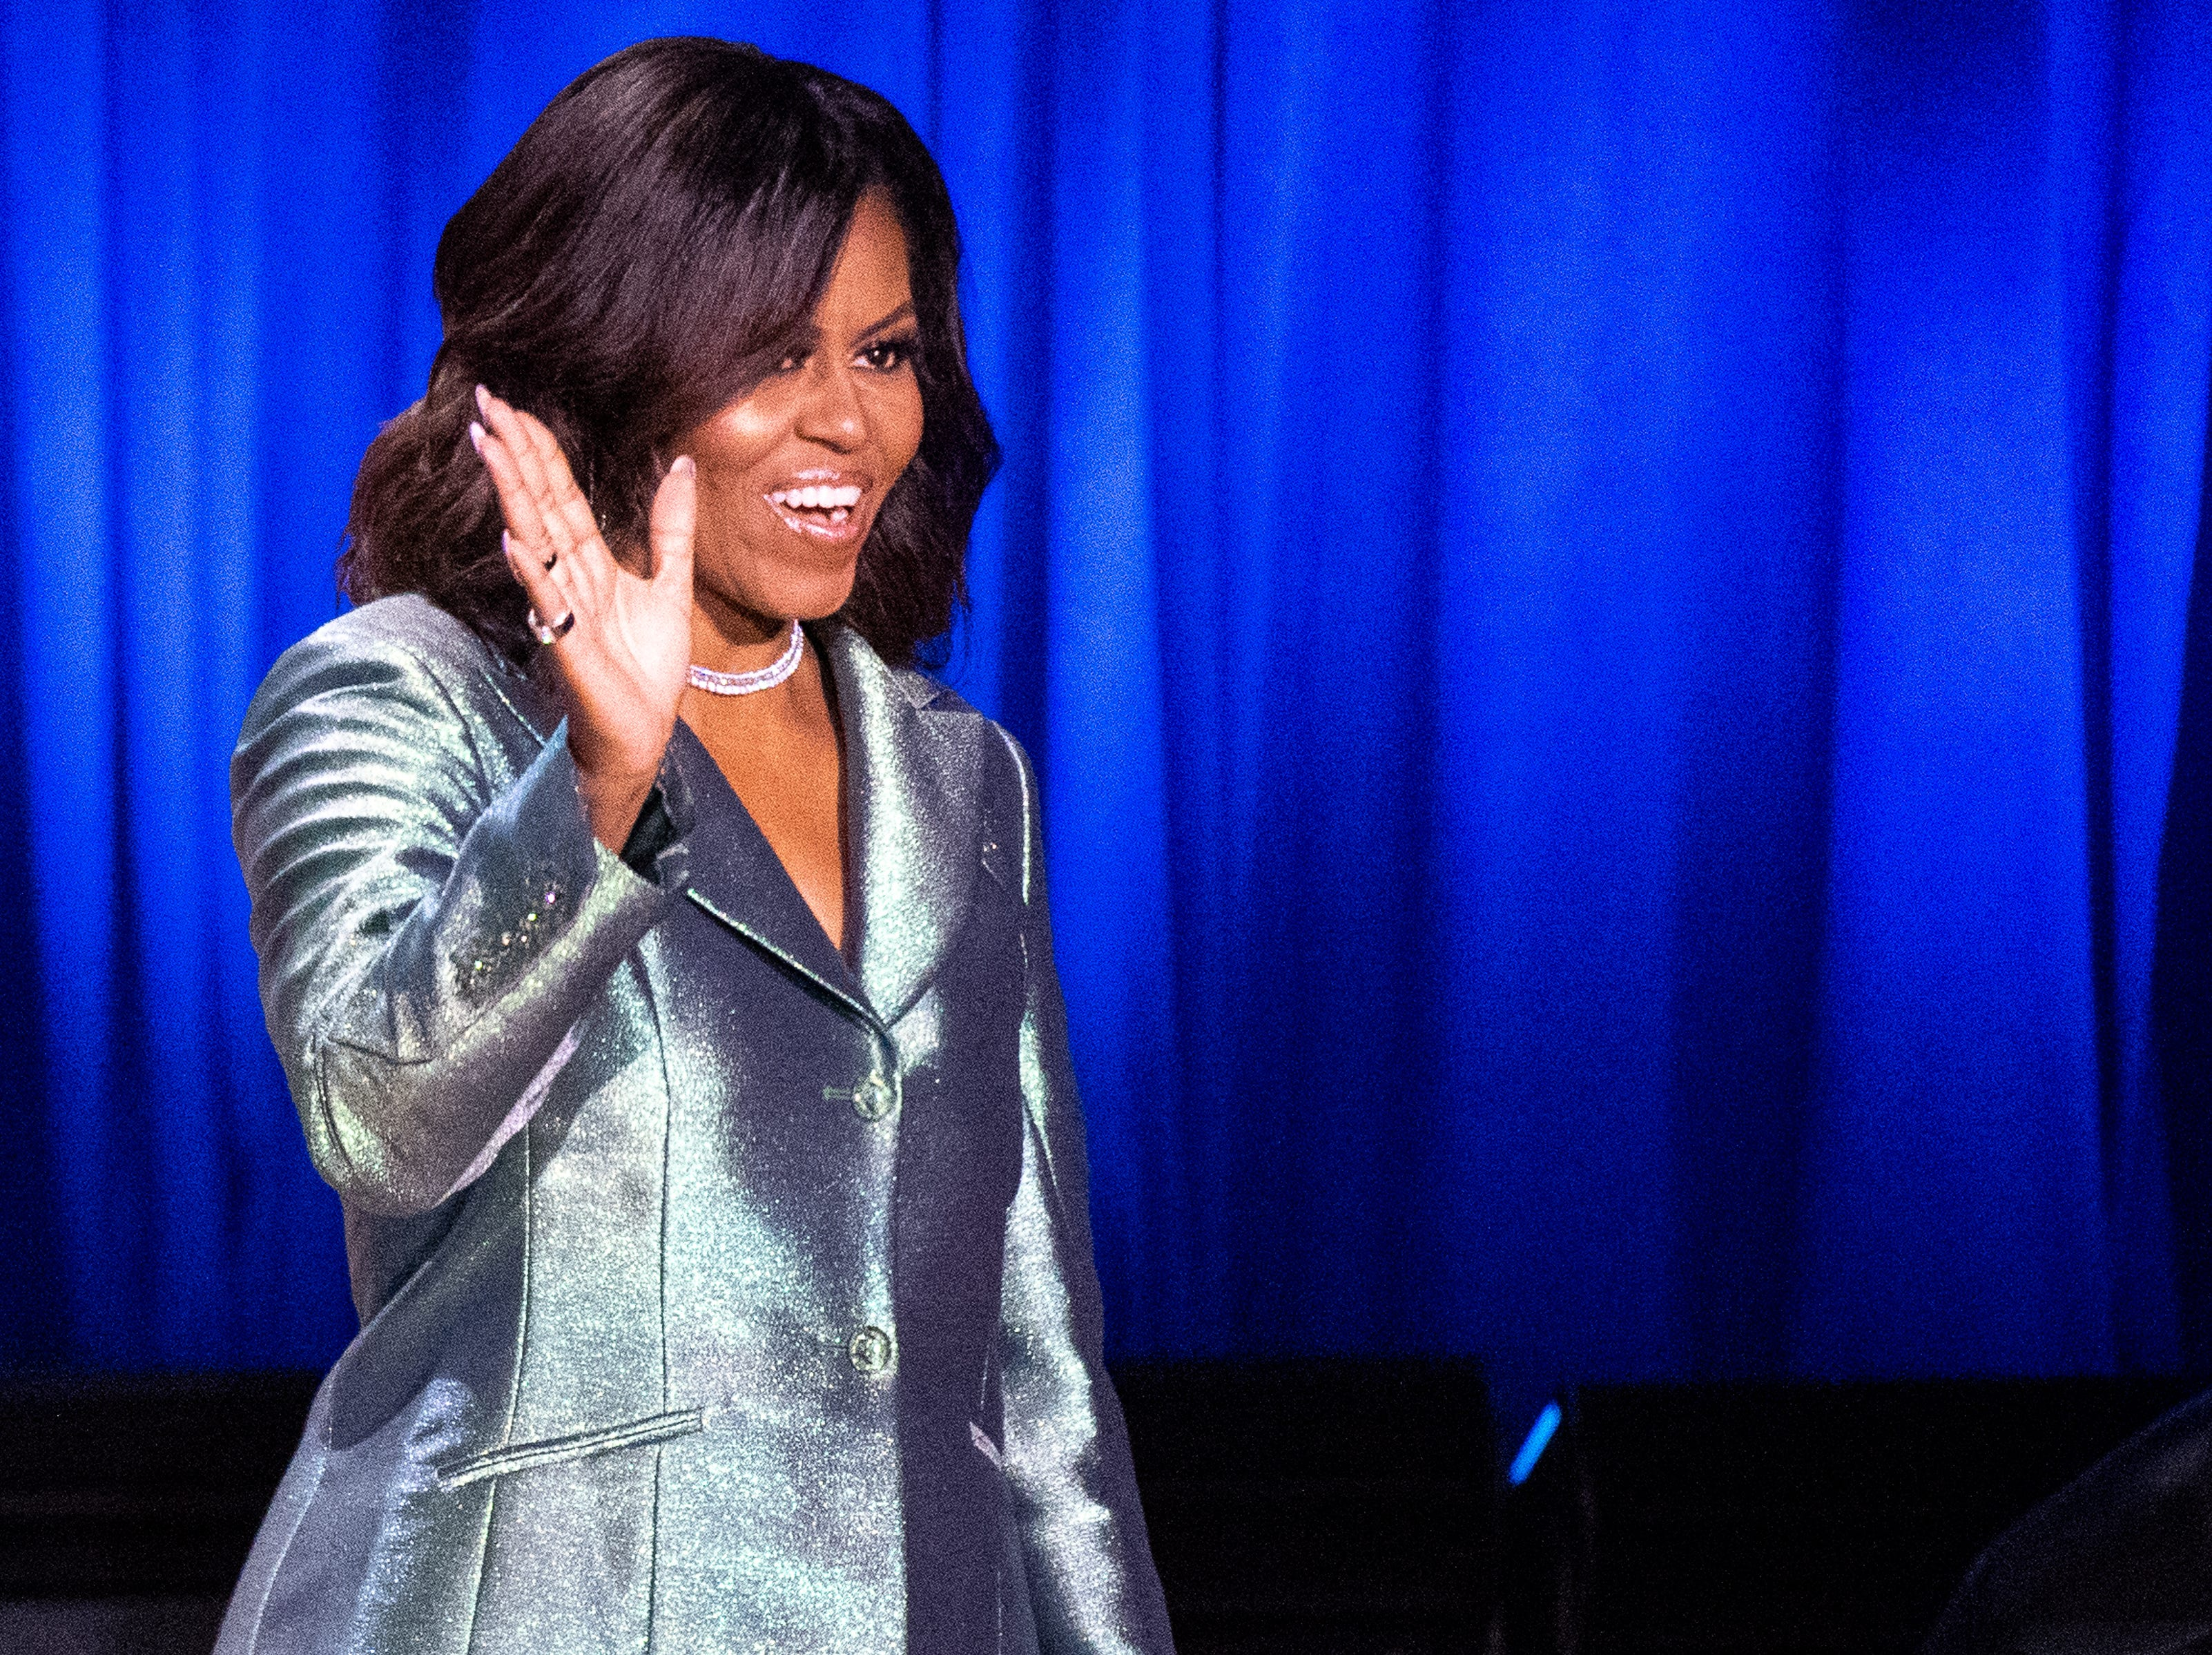 Michelle Obama walks on stage during her Becoming: An Intimate Conversation with Michelle Obama event at Ryman Auditorium Sunday, May 12, 2019, in Nashville, Tenn.